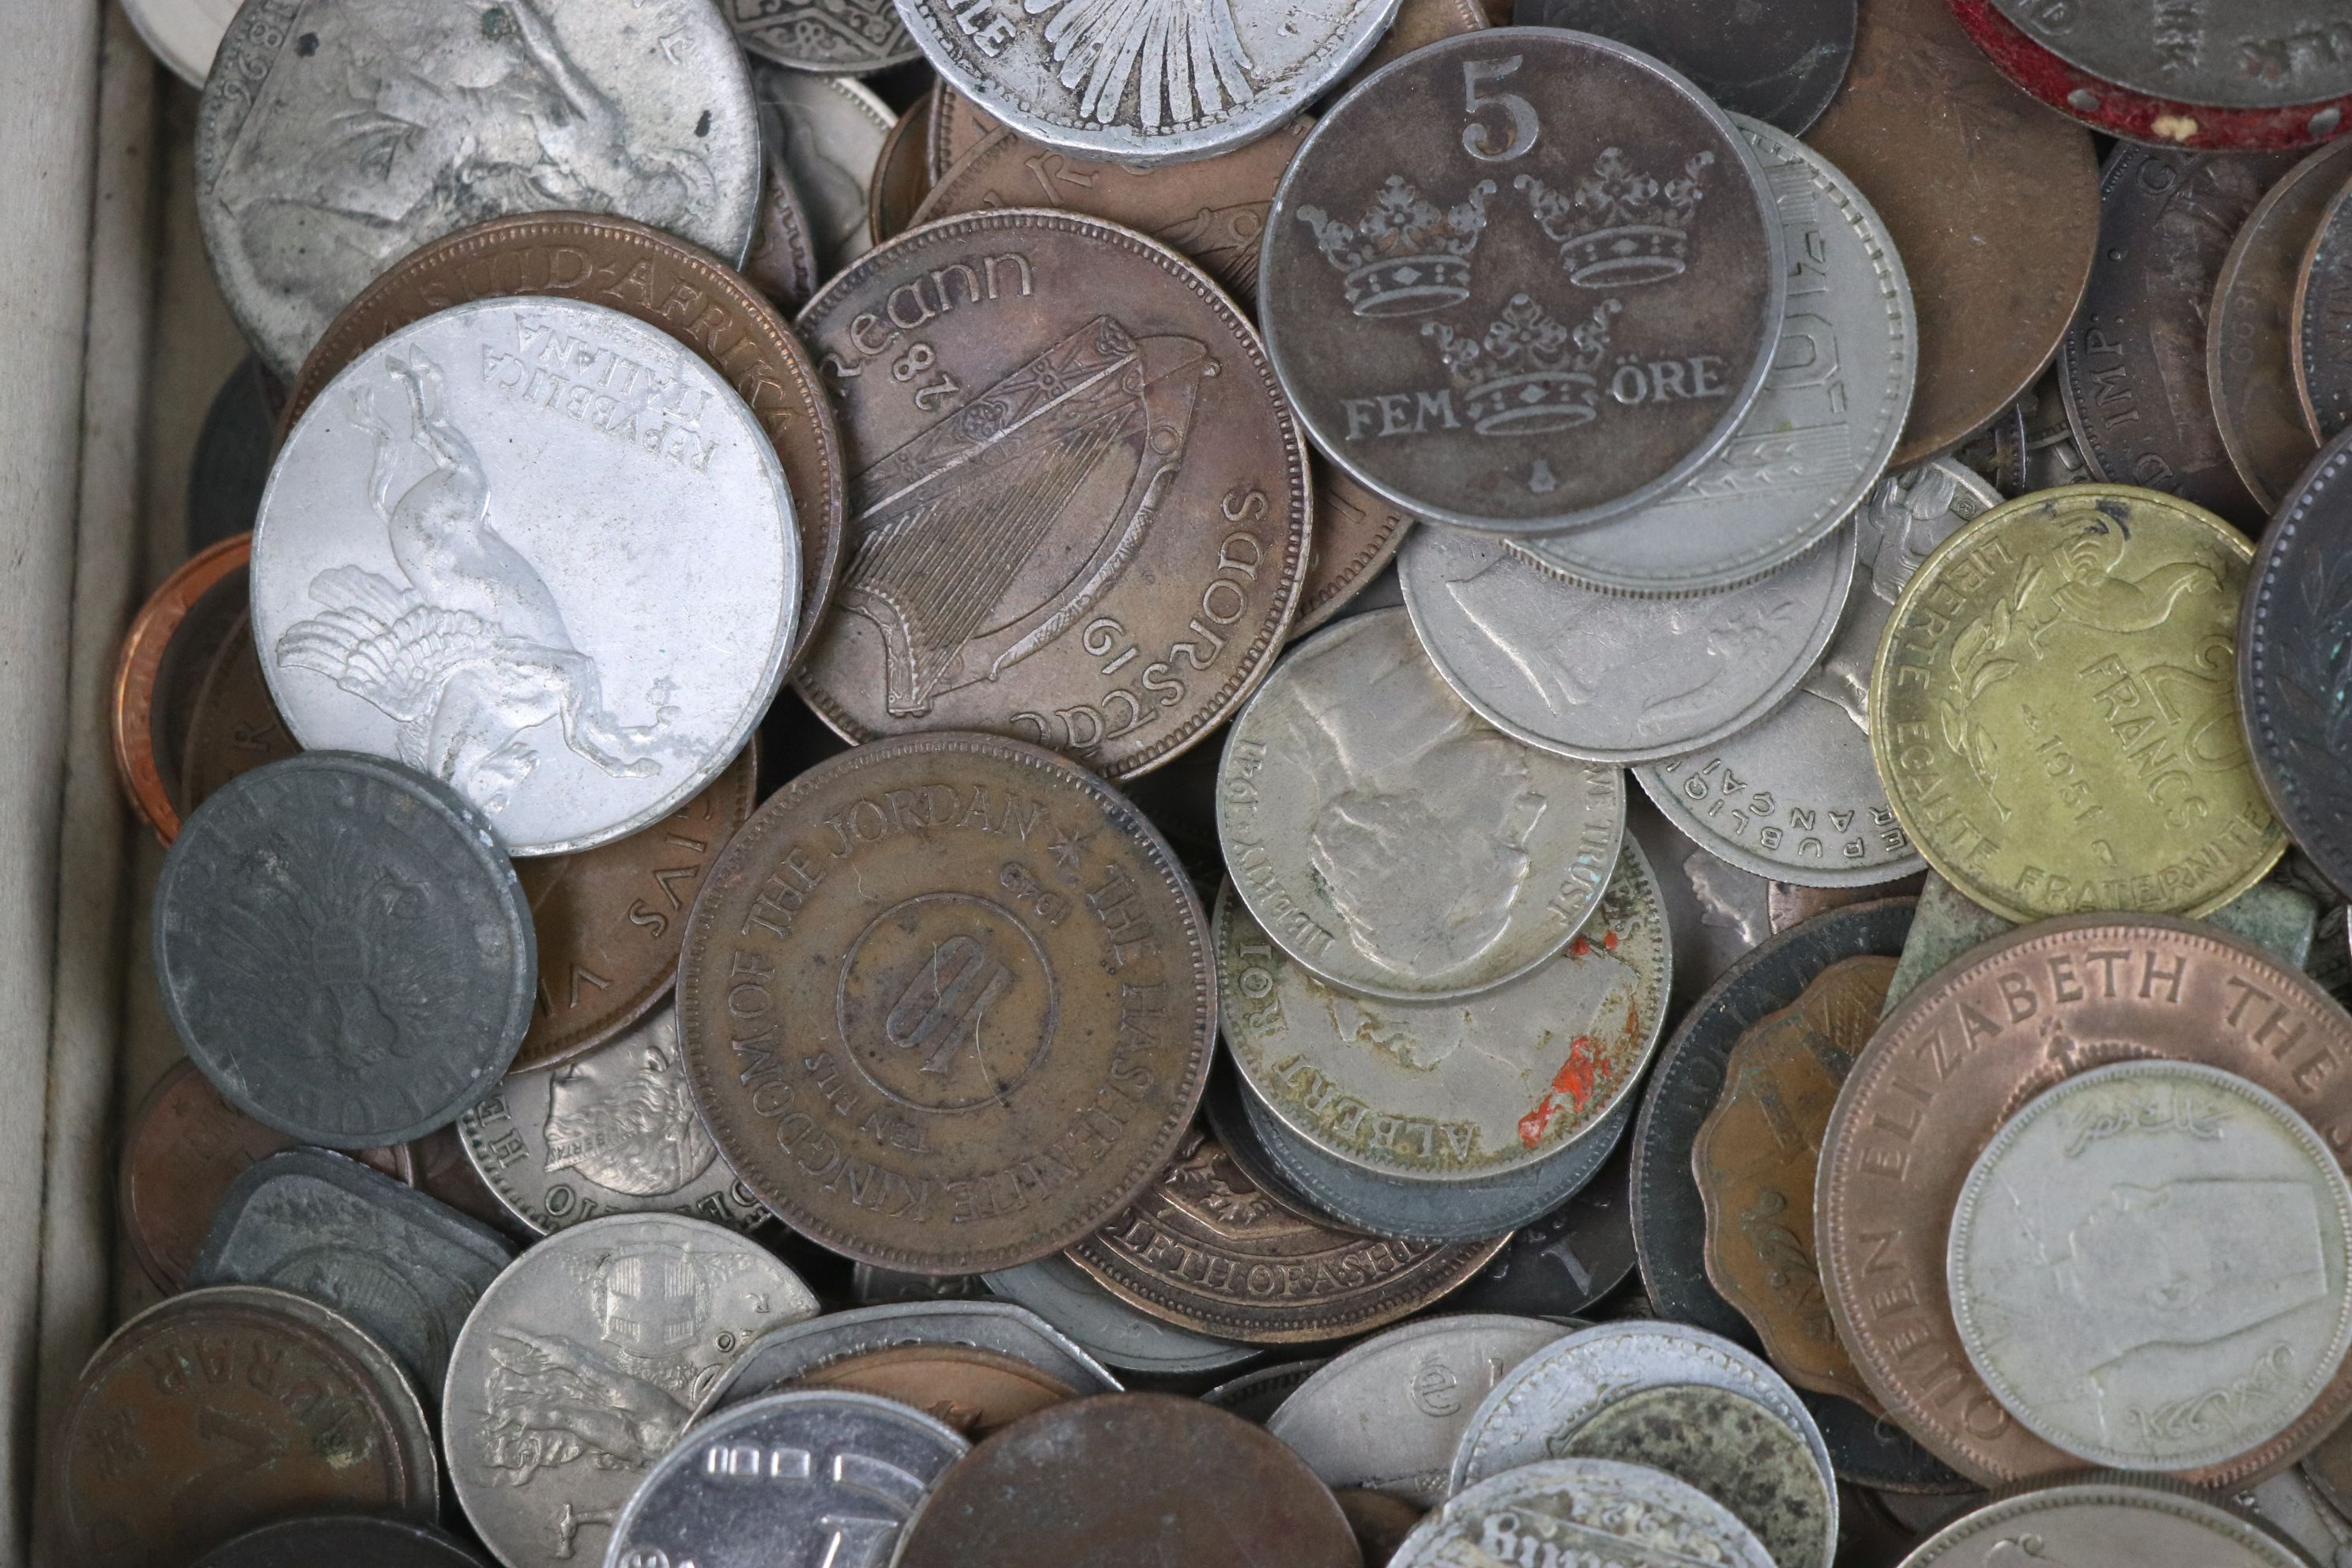 A collection of mixed 19th and 20th century British and world coins. - Image 3 of 10